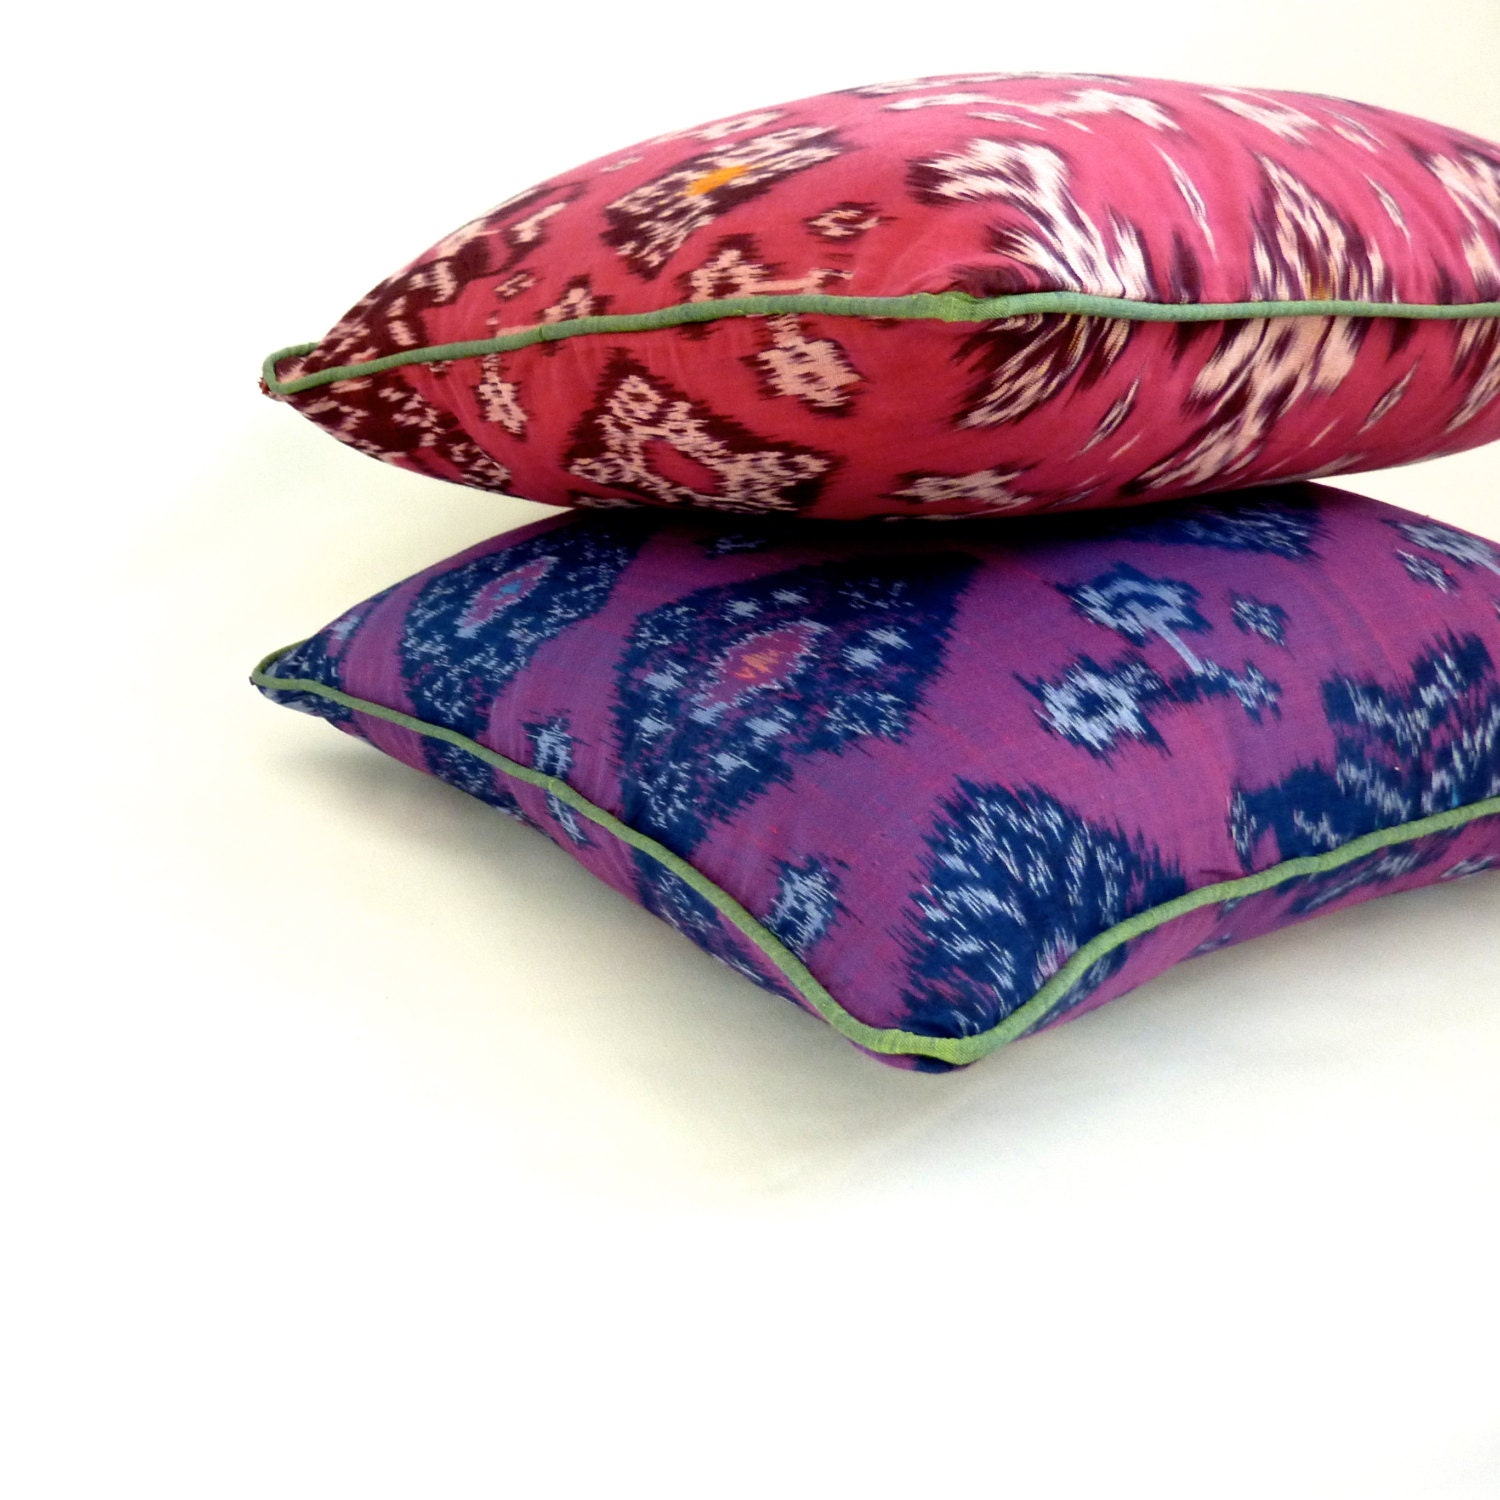 Set of 2 Ikat Throw Pillow Covers: pick any two by PigAndGoose